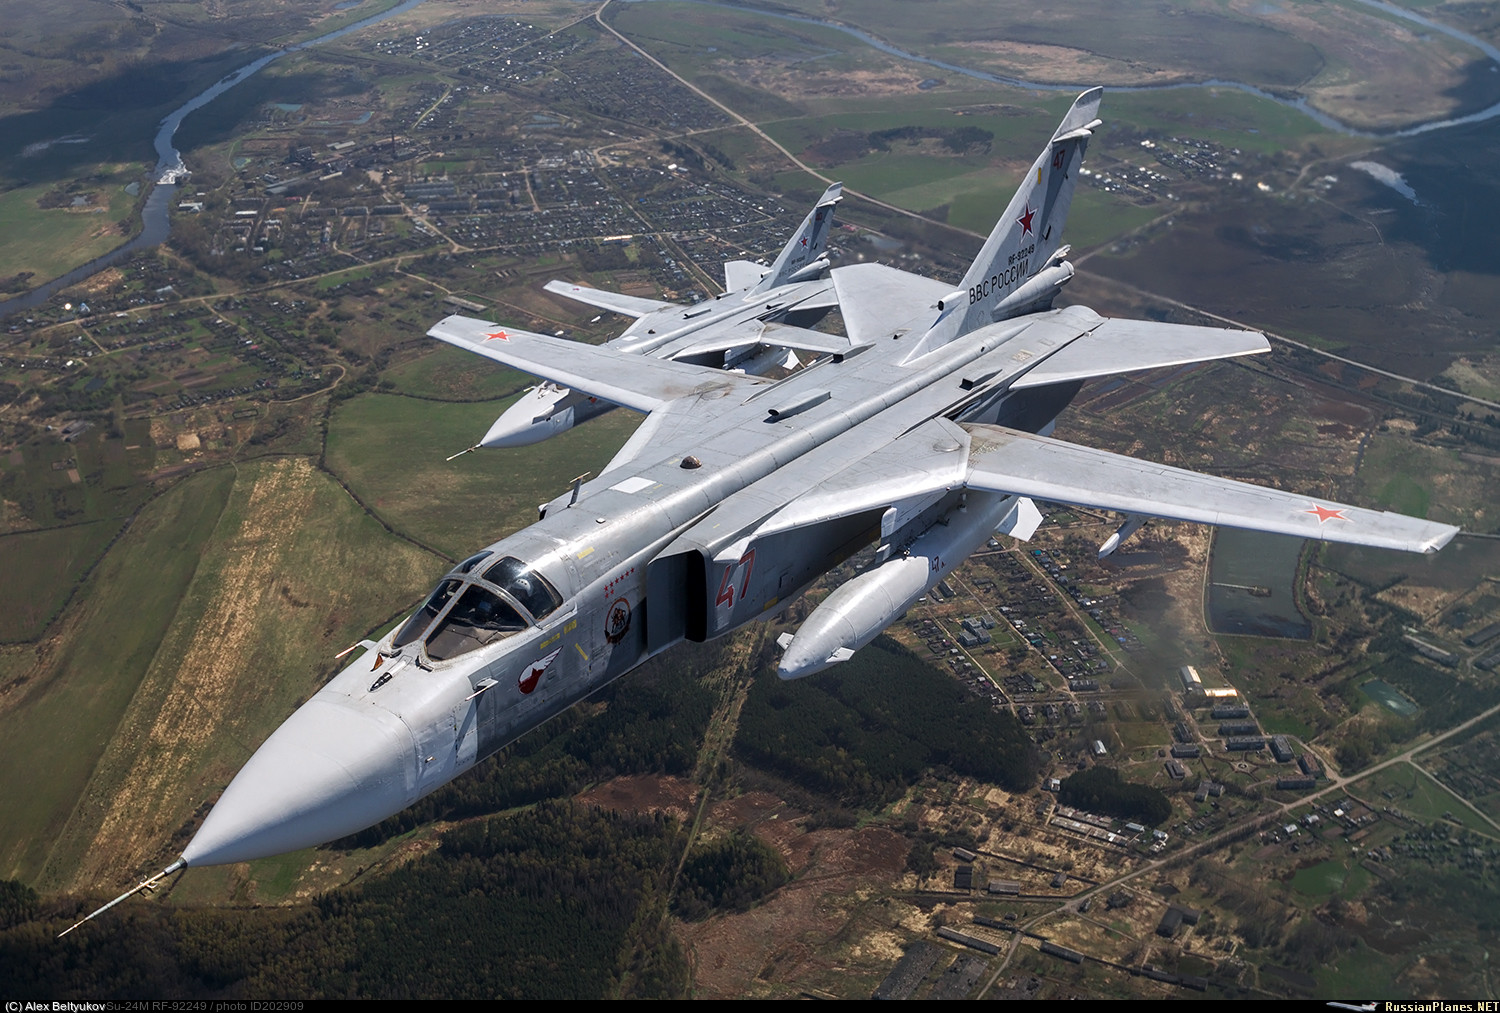 Naval Sukhoi Su 24M to get SVP 24 Gefest sighting system